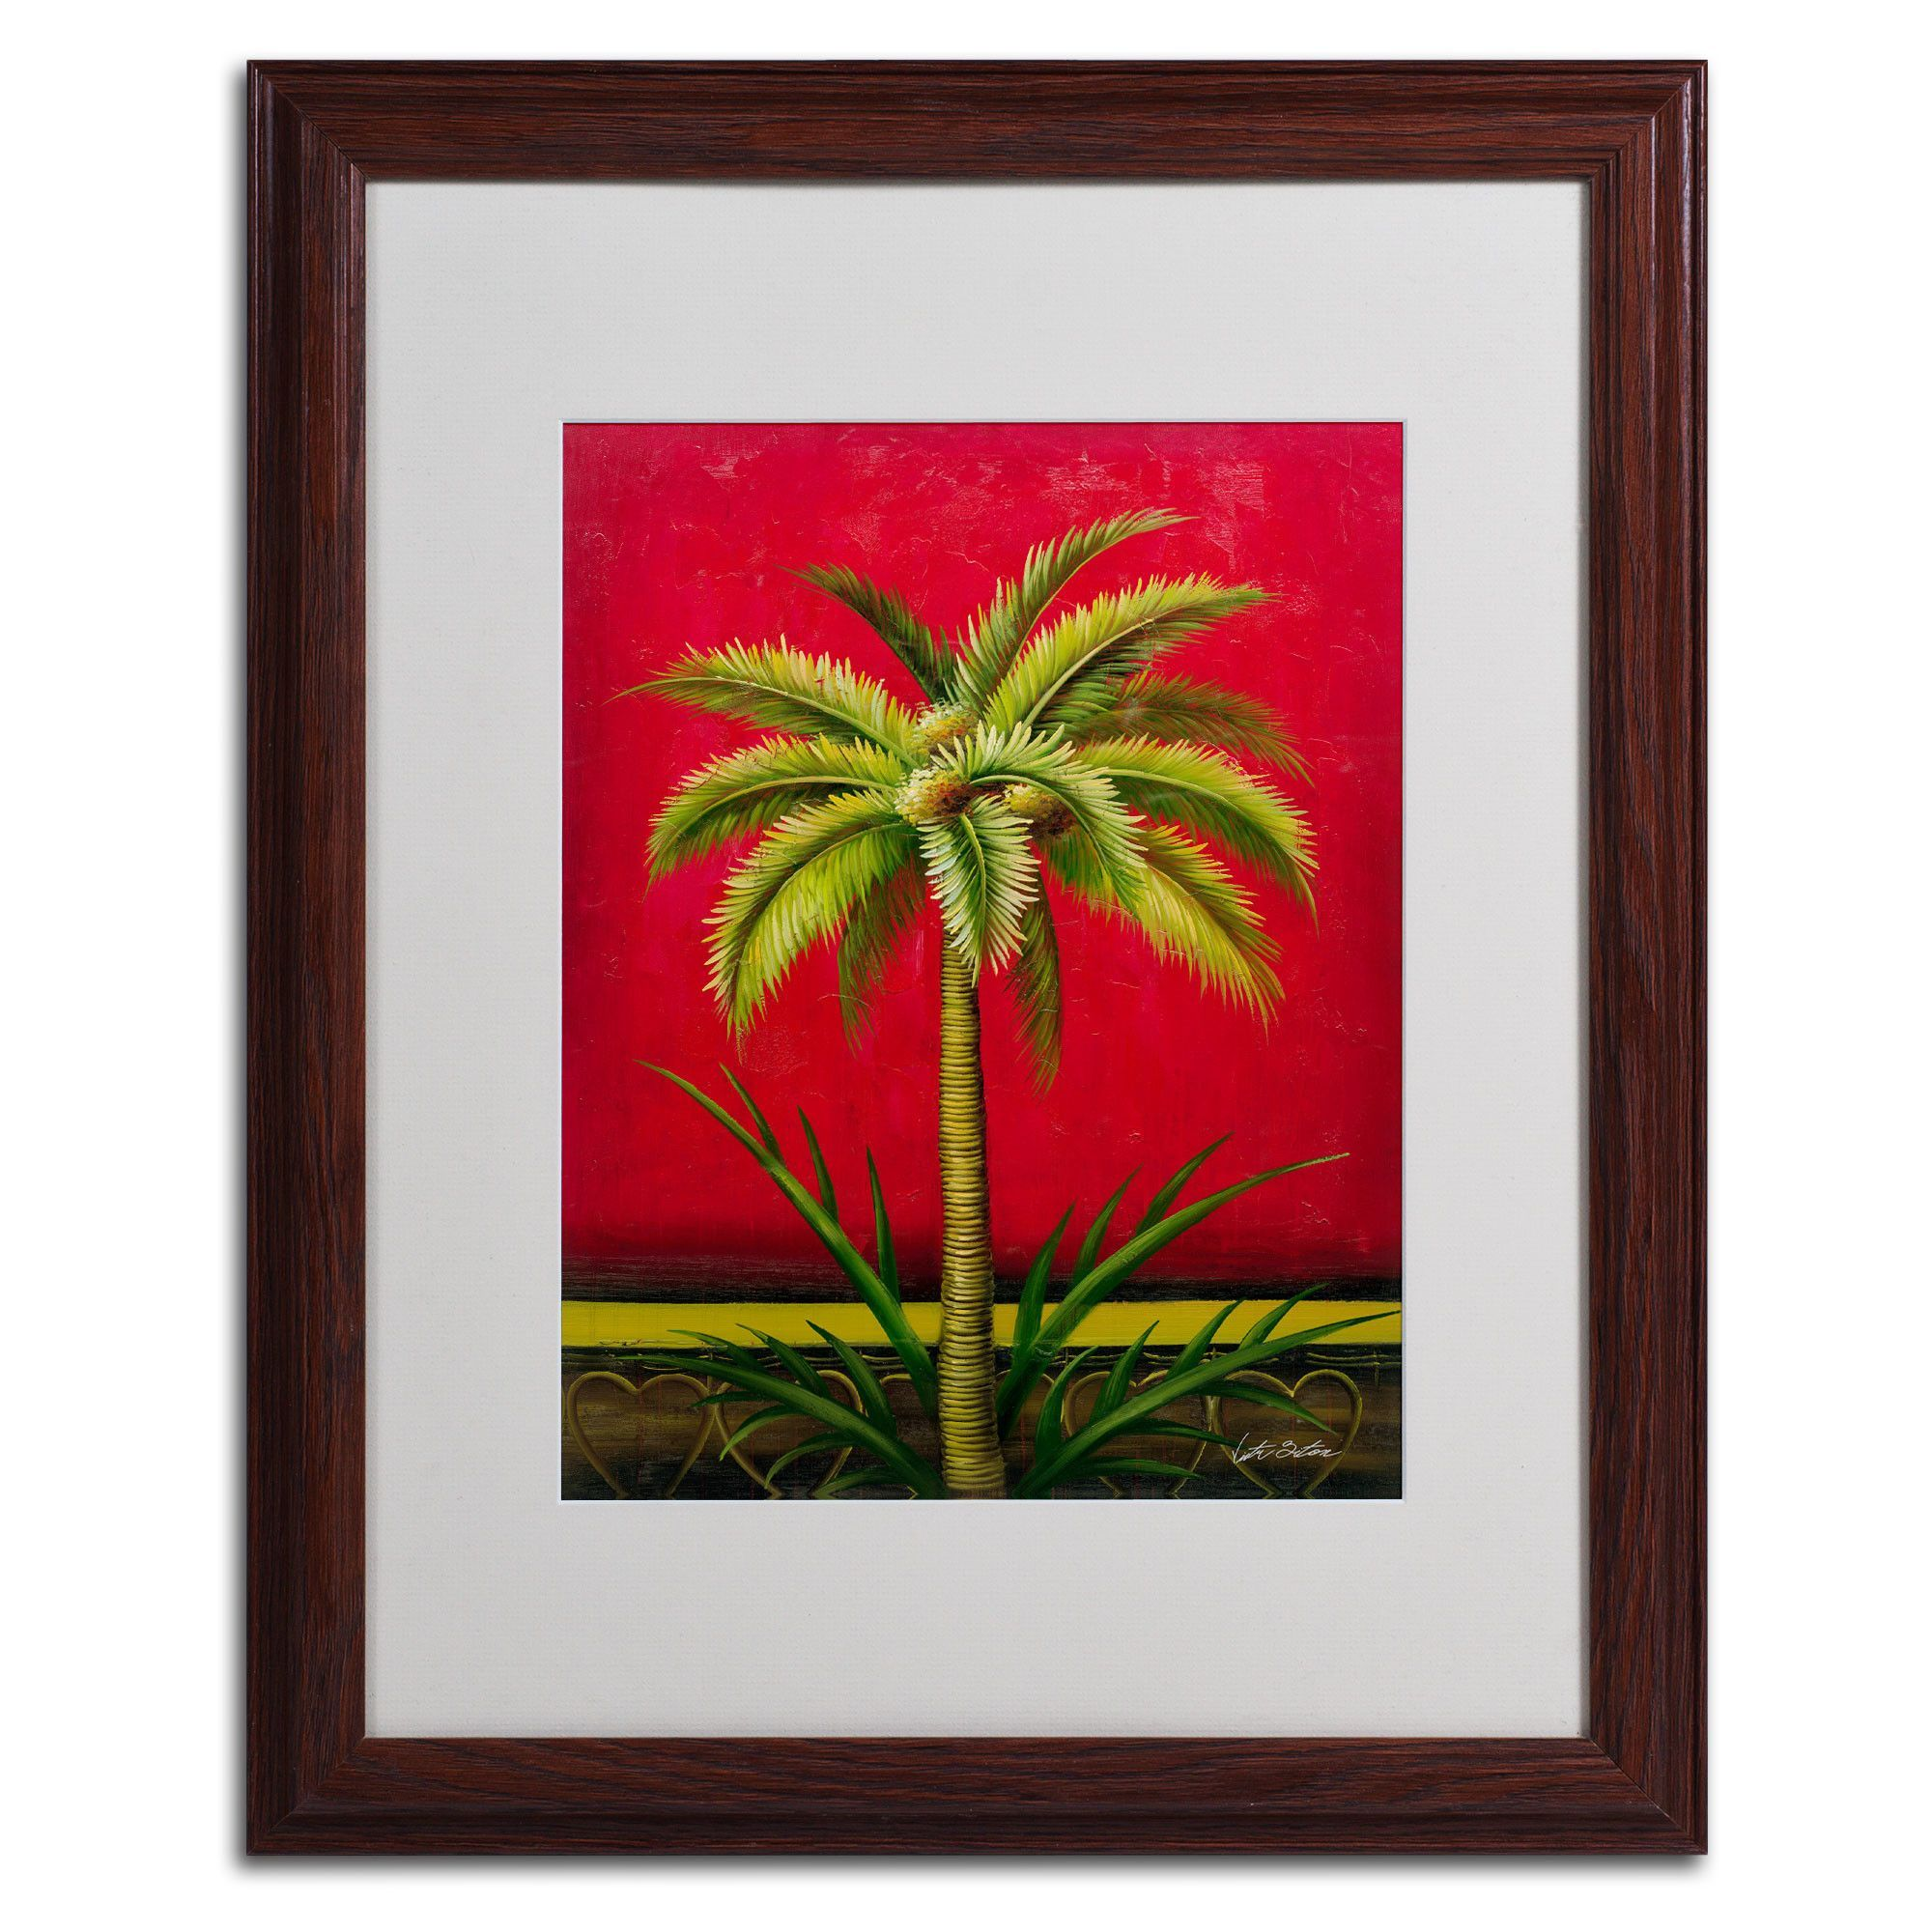 Tropical palm iu by victor giton matted framed painting print